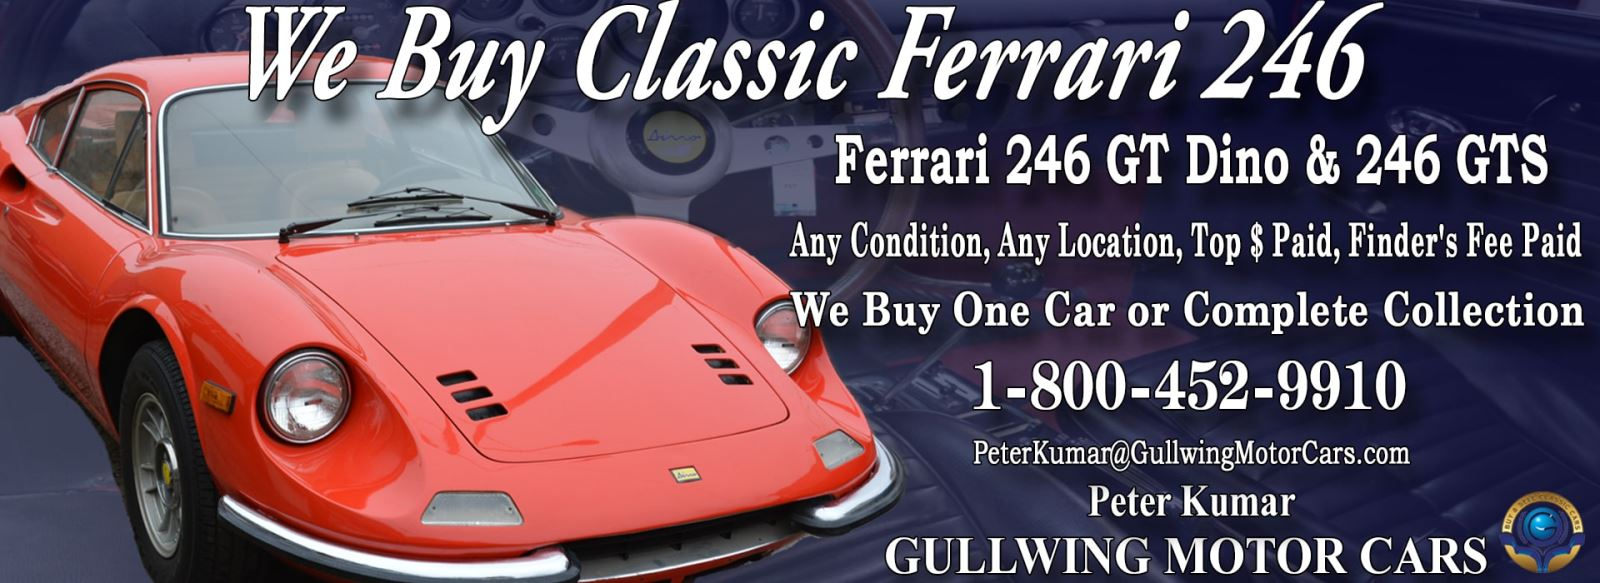 Classic Ferrari 246 GT Dino Coupe for sale, we buy vintage Ferrari 246 GT Dino Coupe. Call Peter Kumar. Gullwing Motor